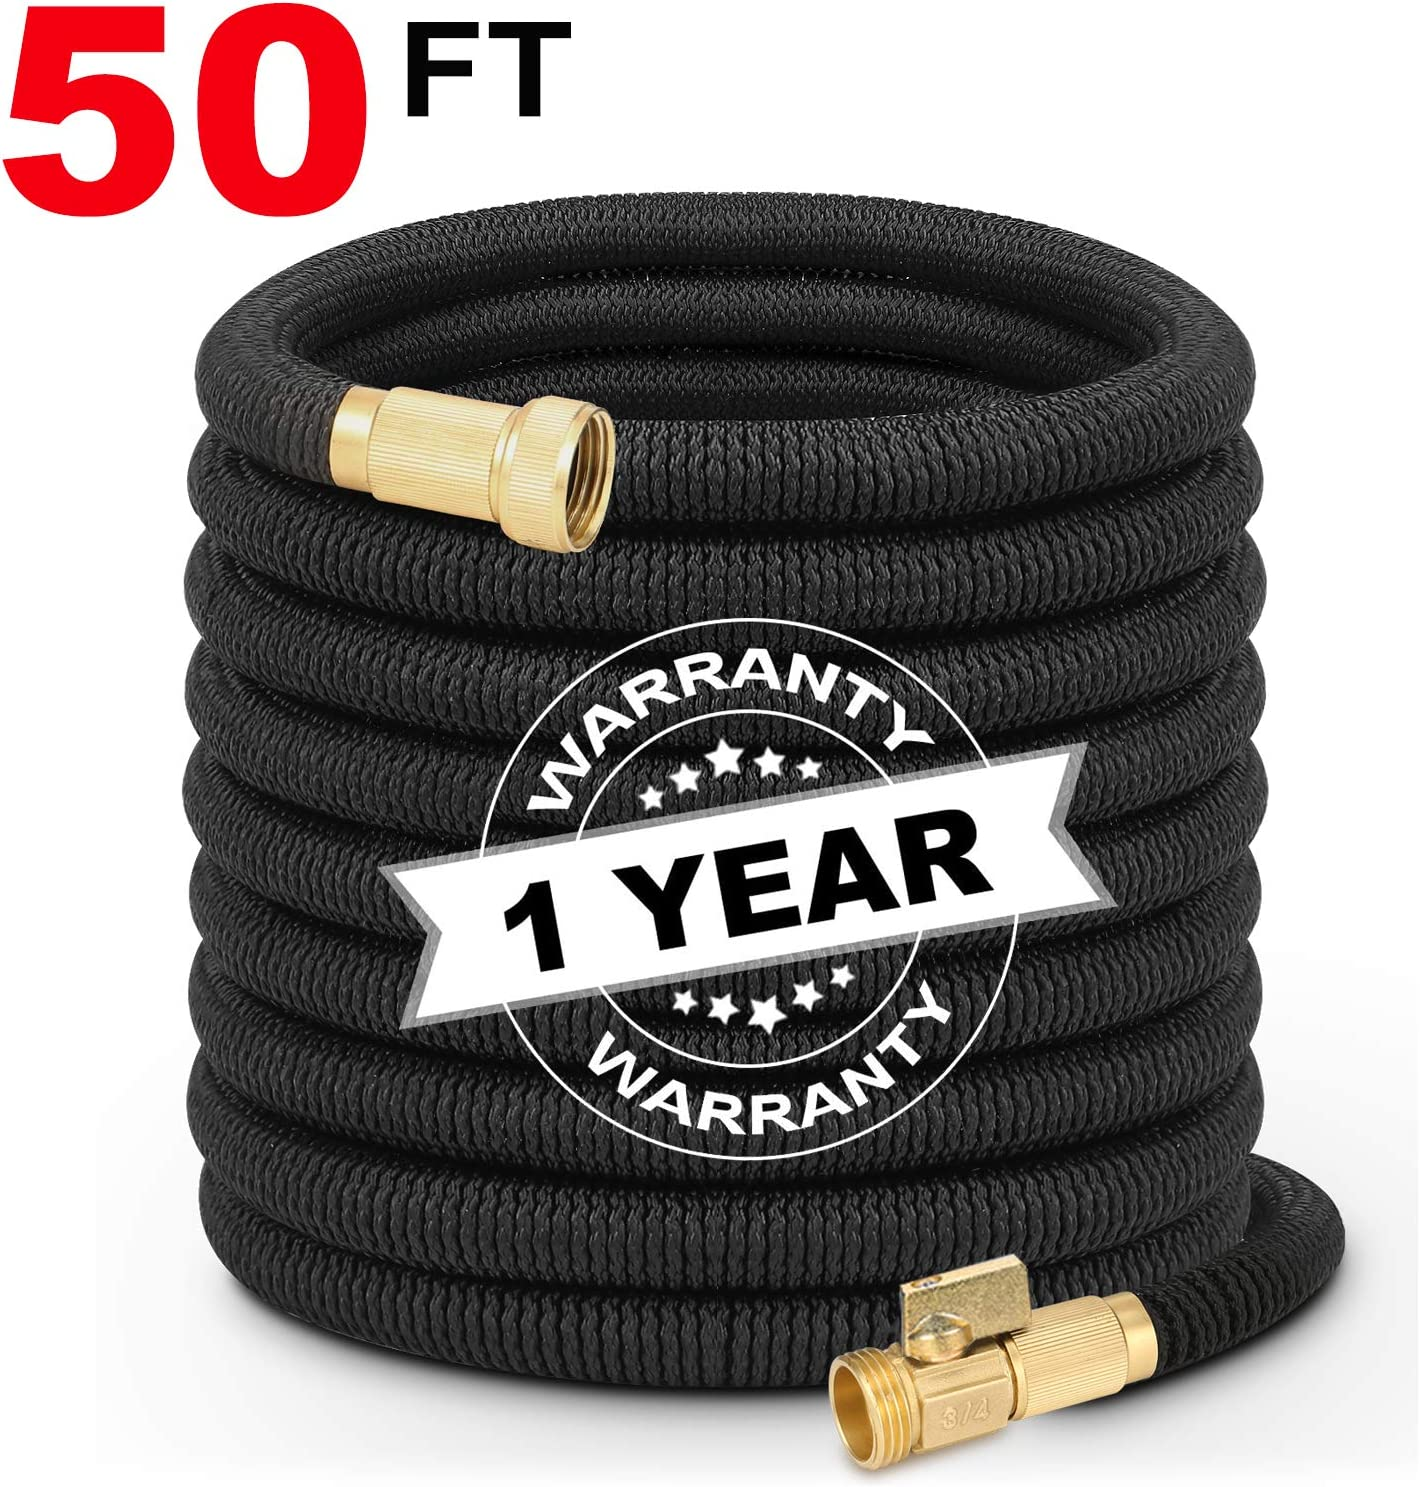 Hermard Expandable Garden Hose 50ft, Flexible Water Hose with Solid Brass Connector, Super Durable Fabric Car Wash Hose, Leakproof Lightweight Expanding Pipe for Watering and Washing